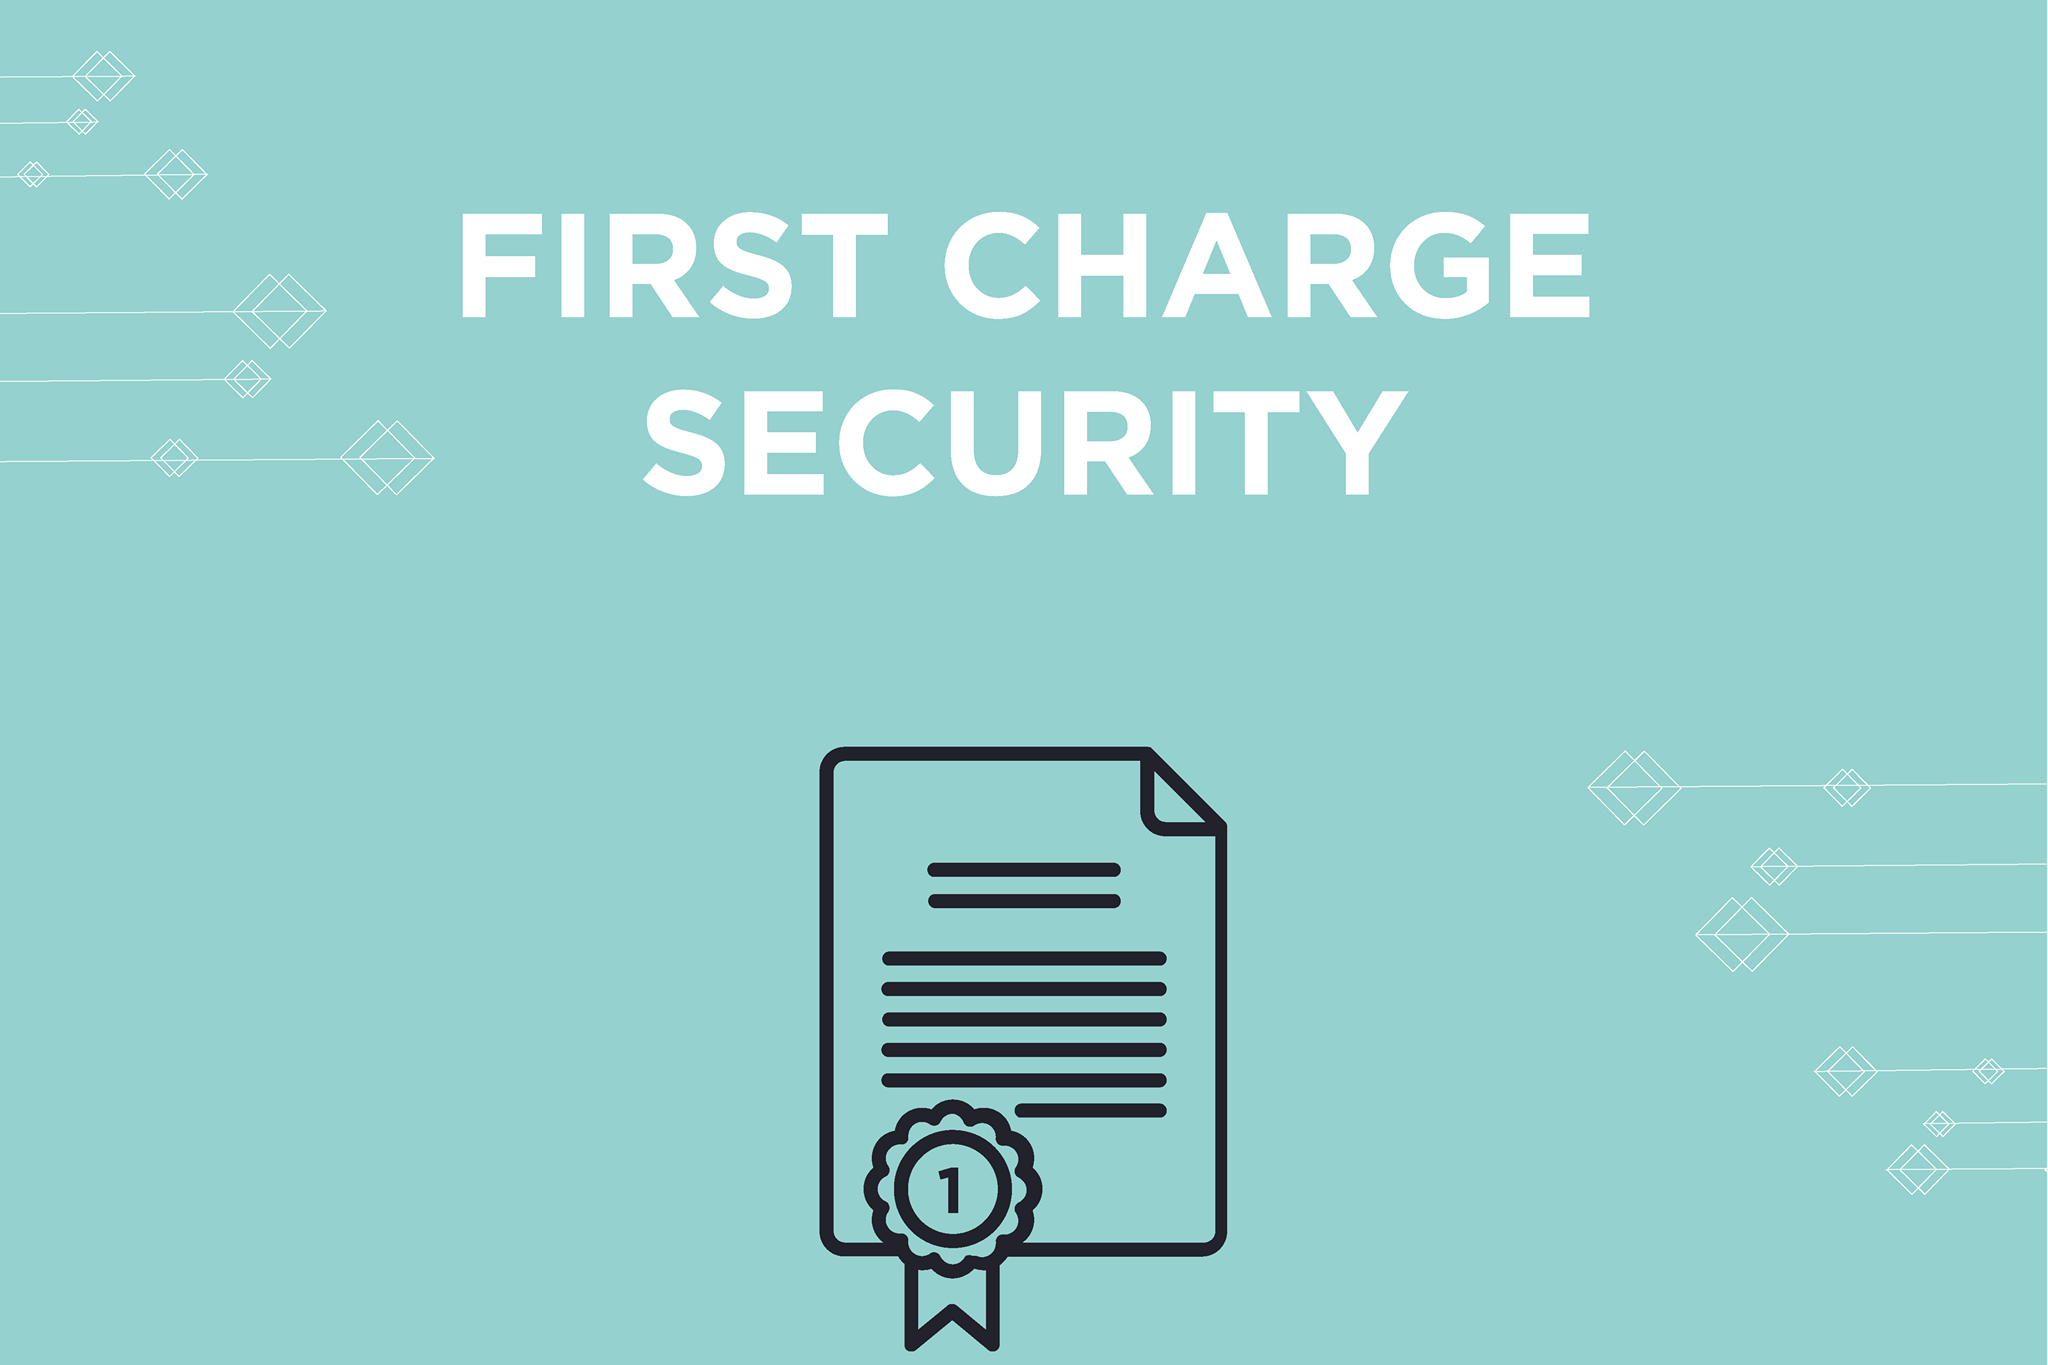 What is First Charge Security?